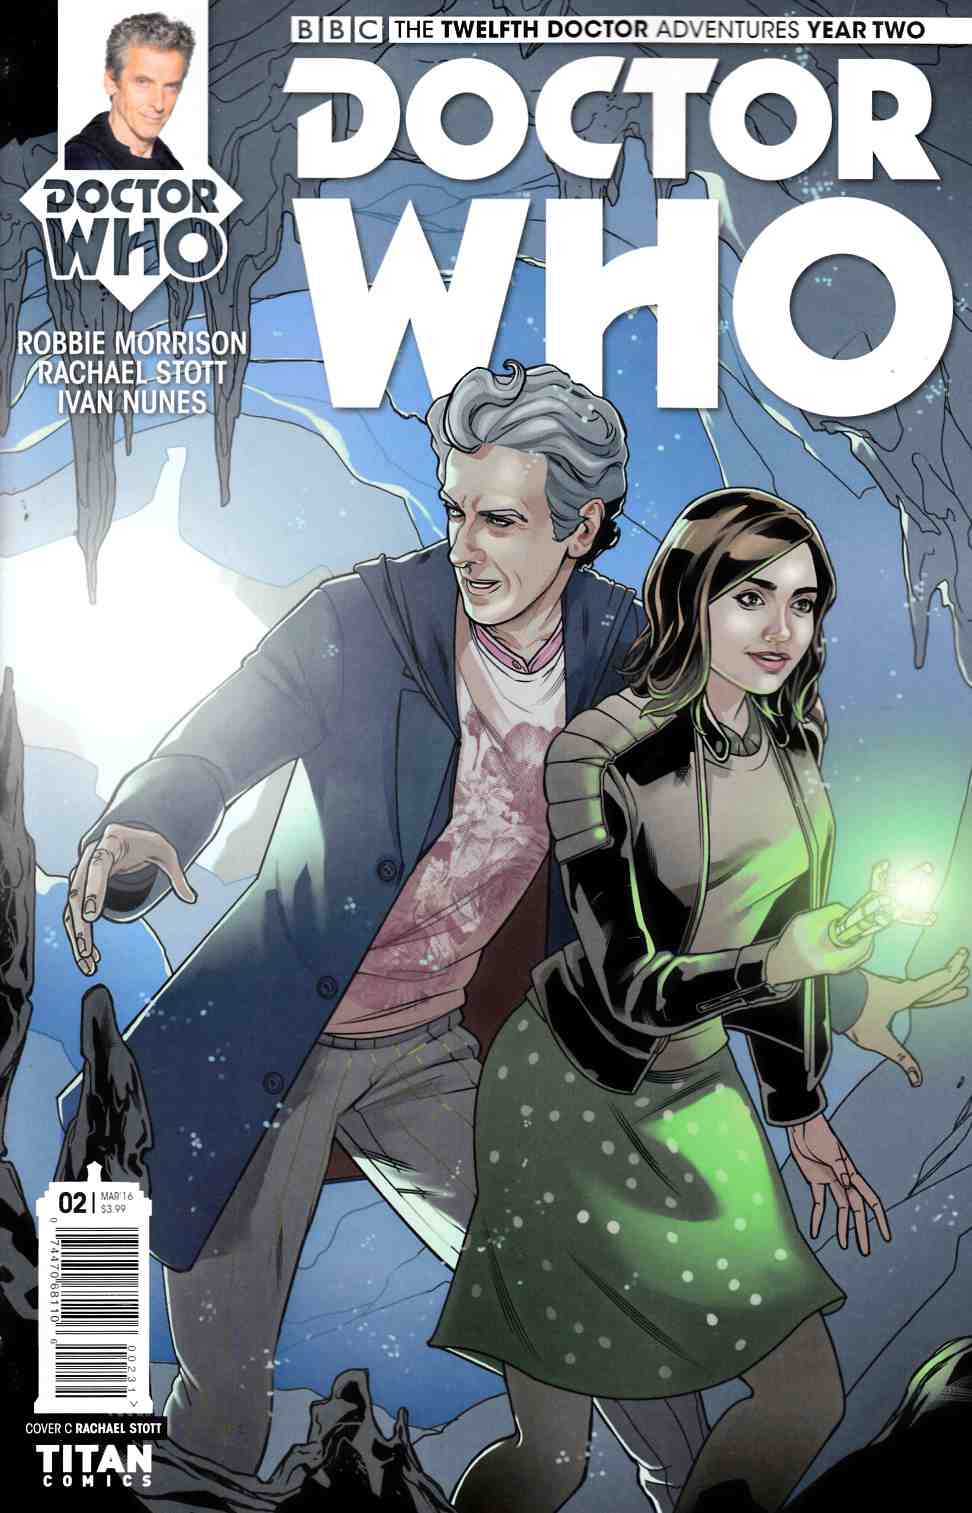 Doctor Who 12th Doctor Year Two #2 Stott Incentive Cover [Titan Comic] THUMBNAIL